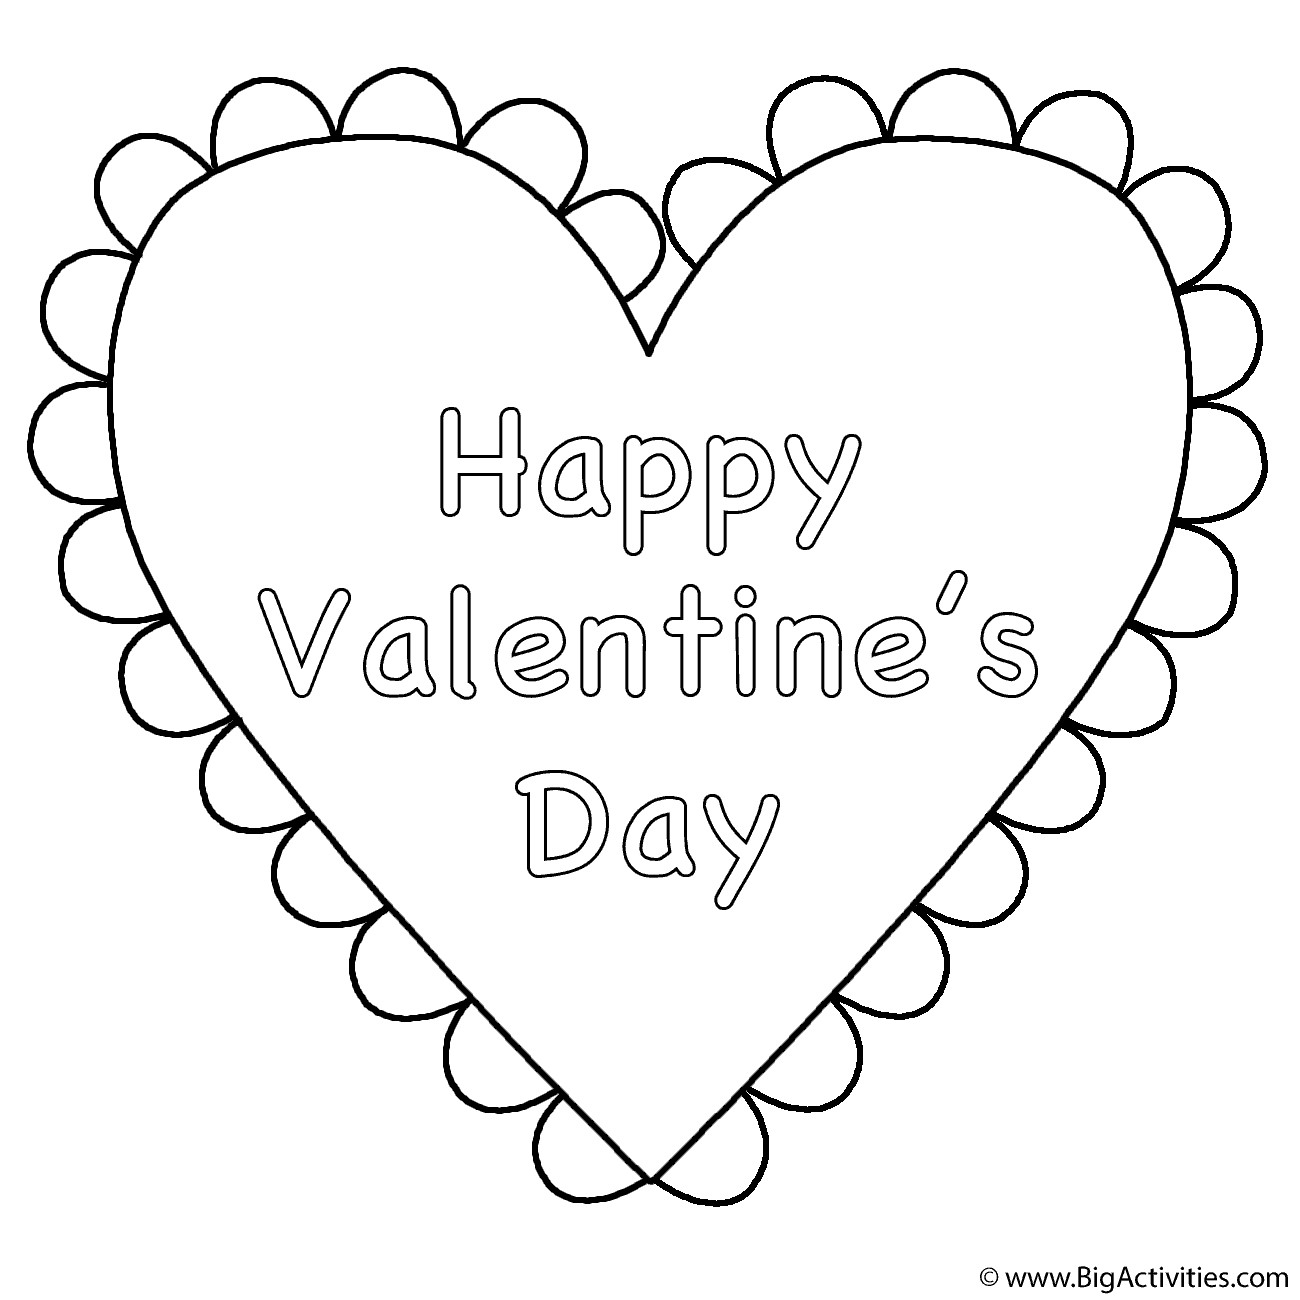 Happy Valentines Day Coloring Pages  Heart Happy Valentine s Day Coloring Page Valentine s